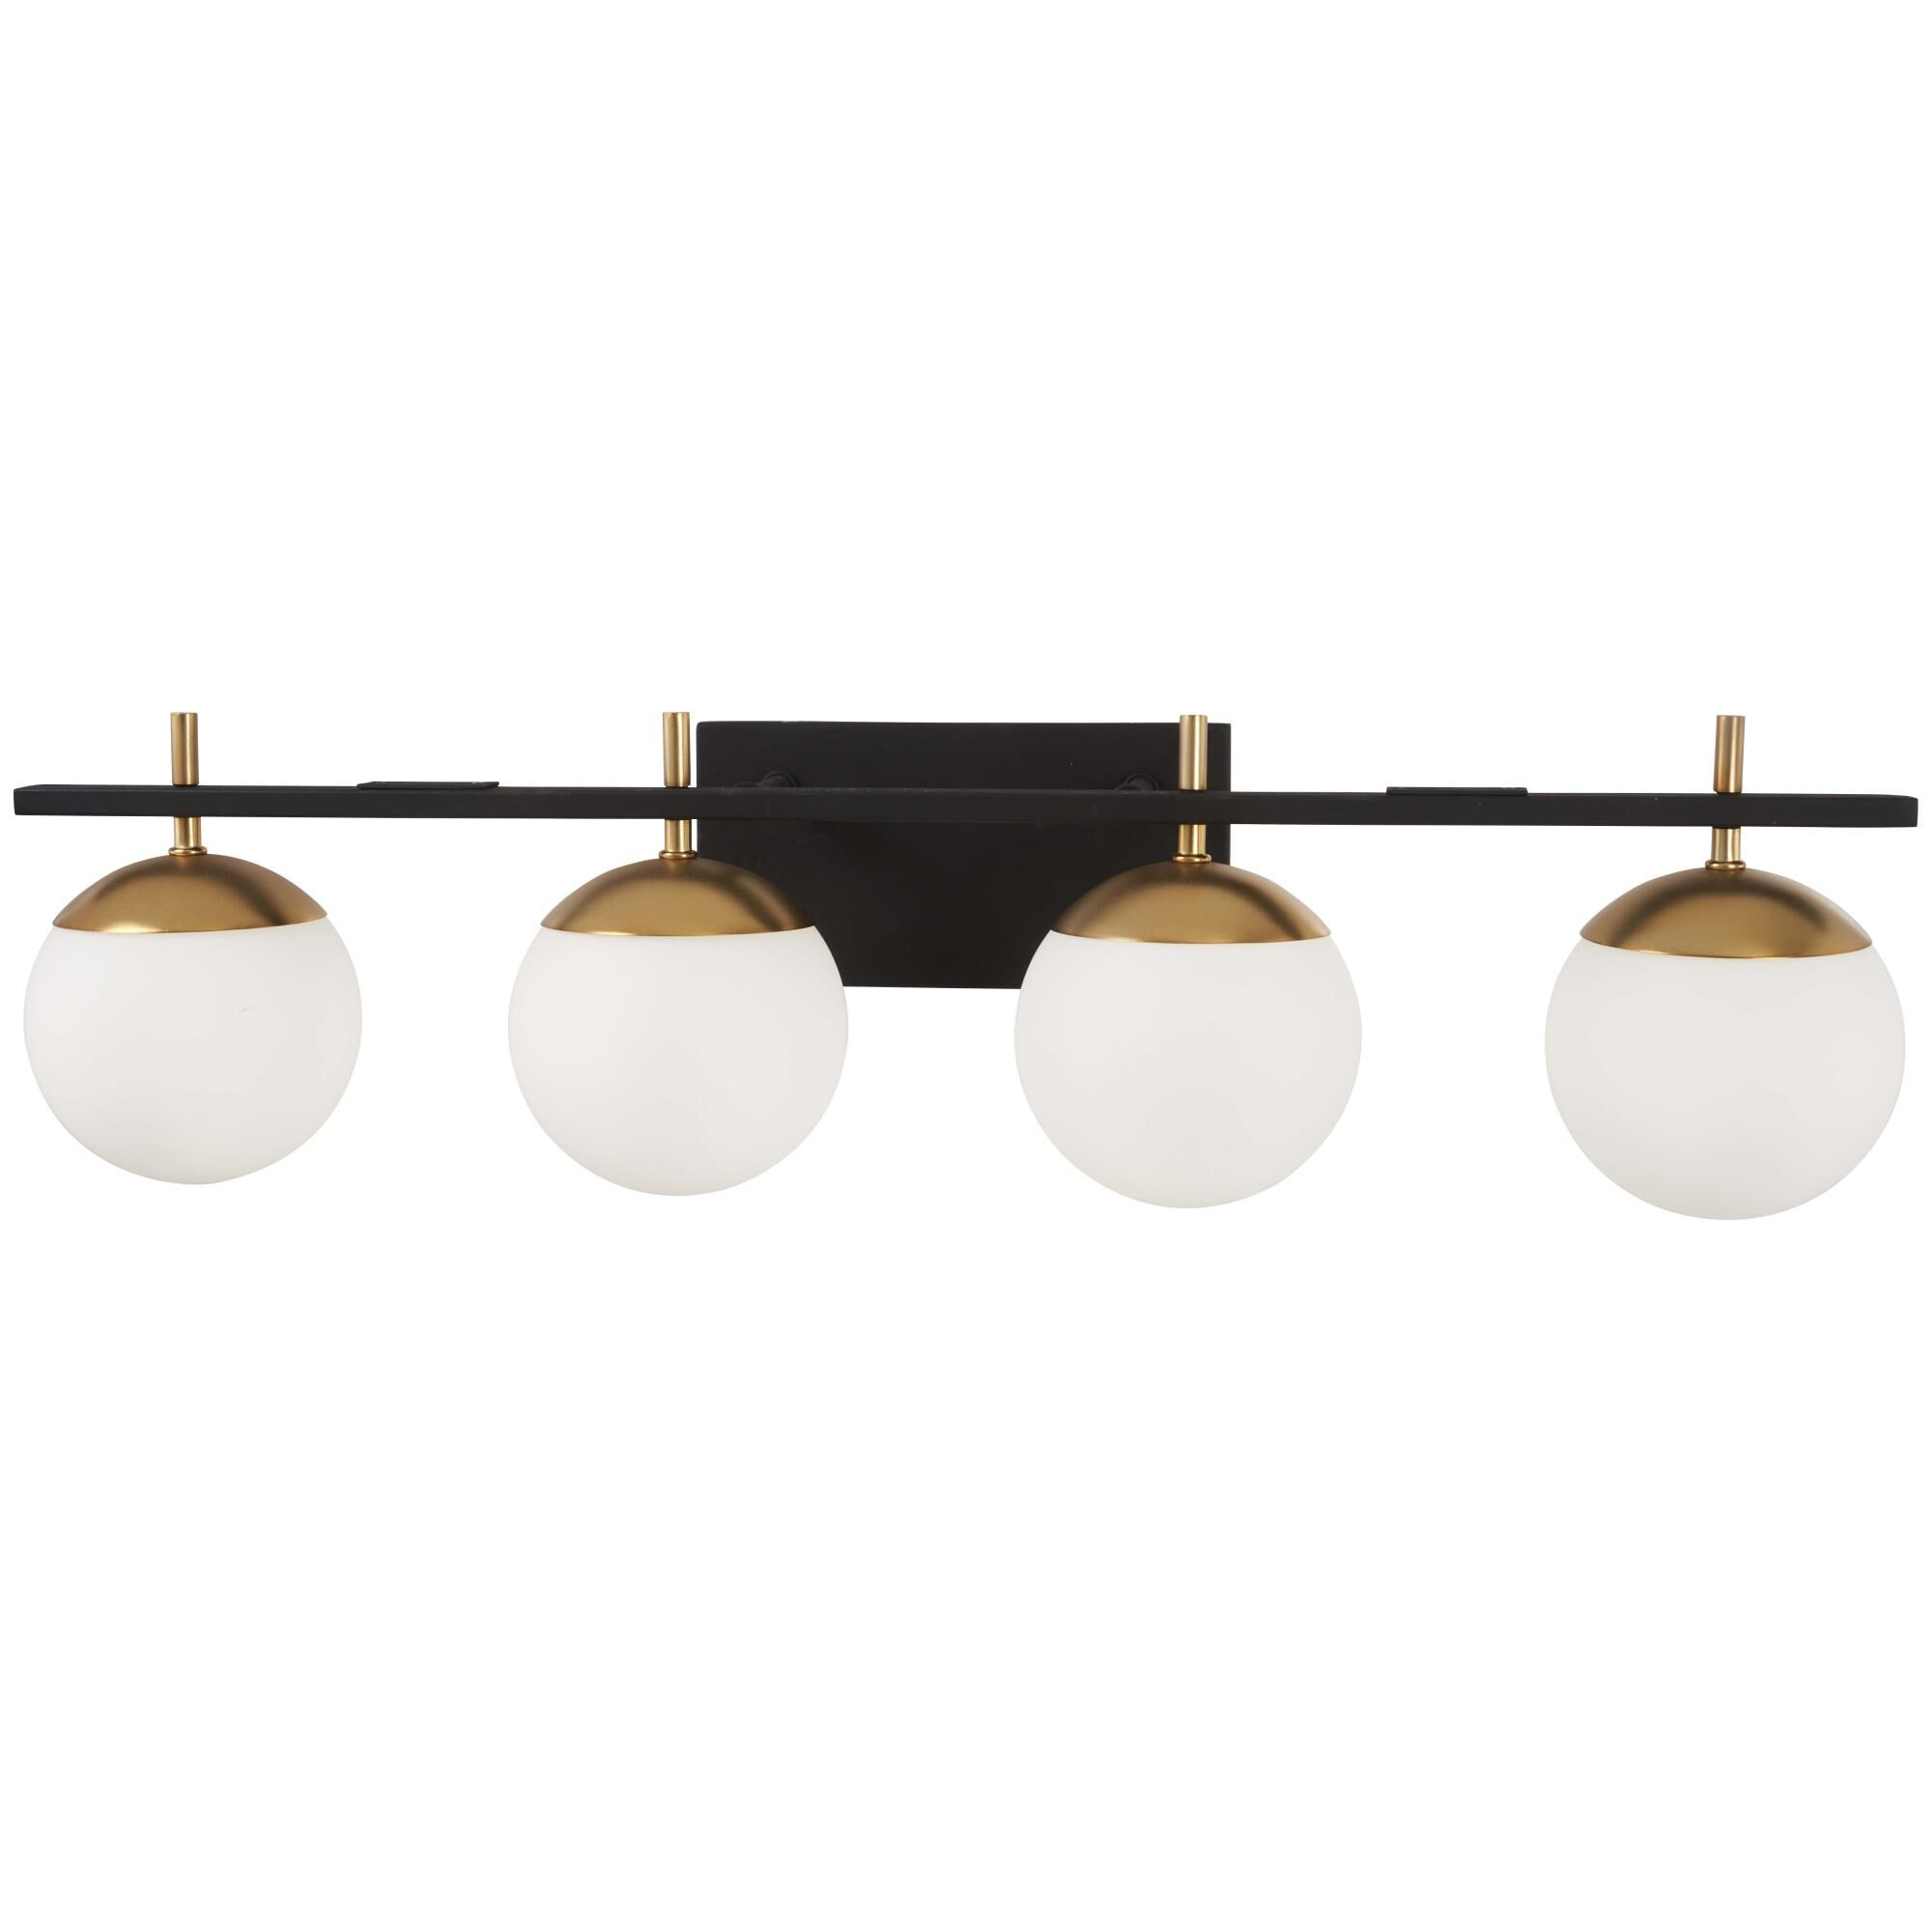 Kovacs Alluria 33 Inch 4 Light Bath Vanity Light Alluria - P1354-618 - Transitional